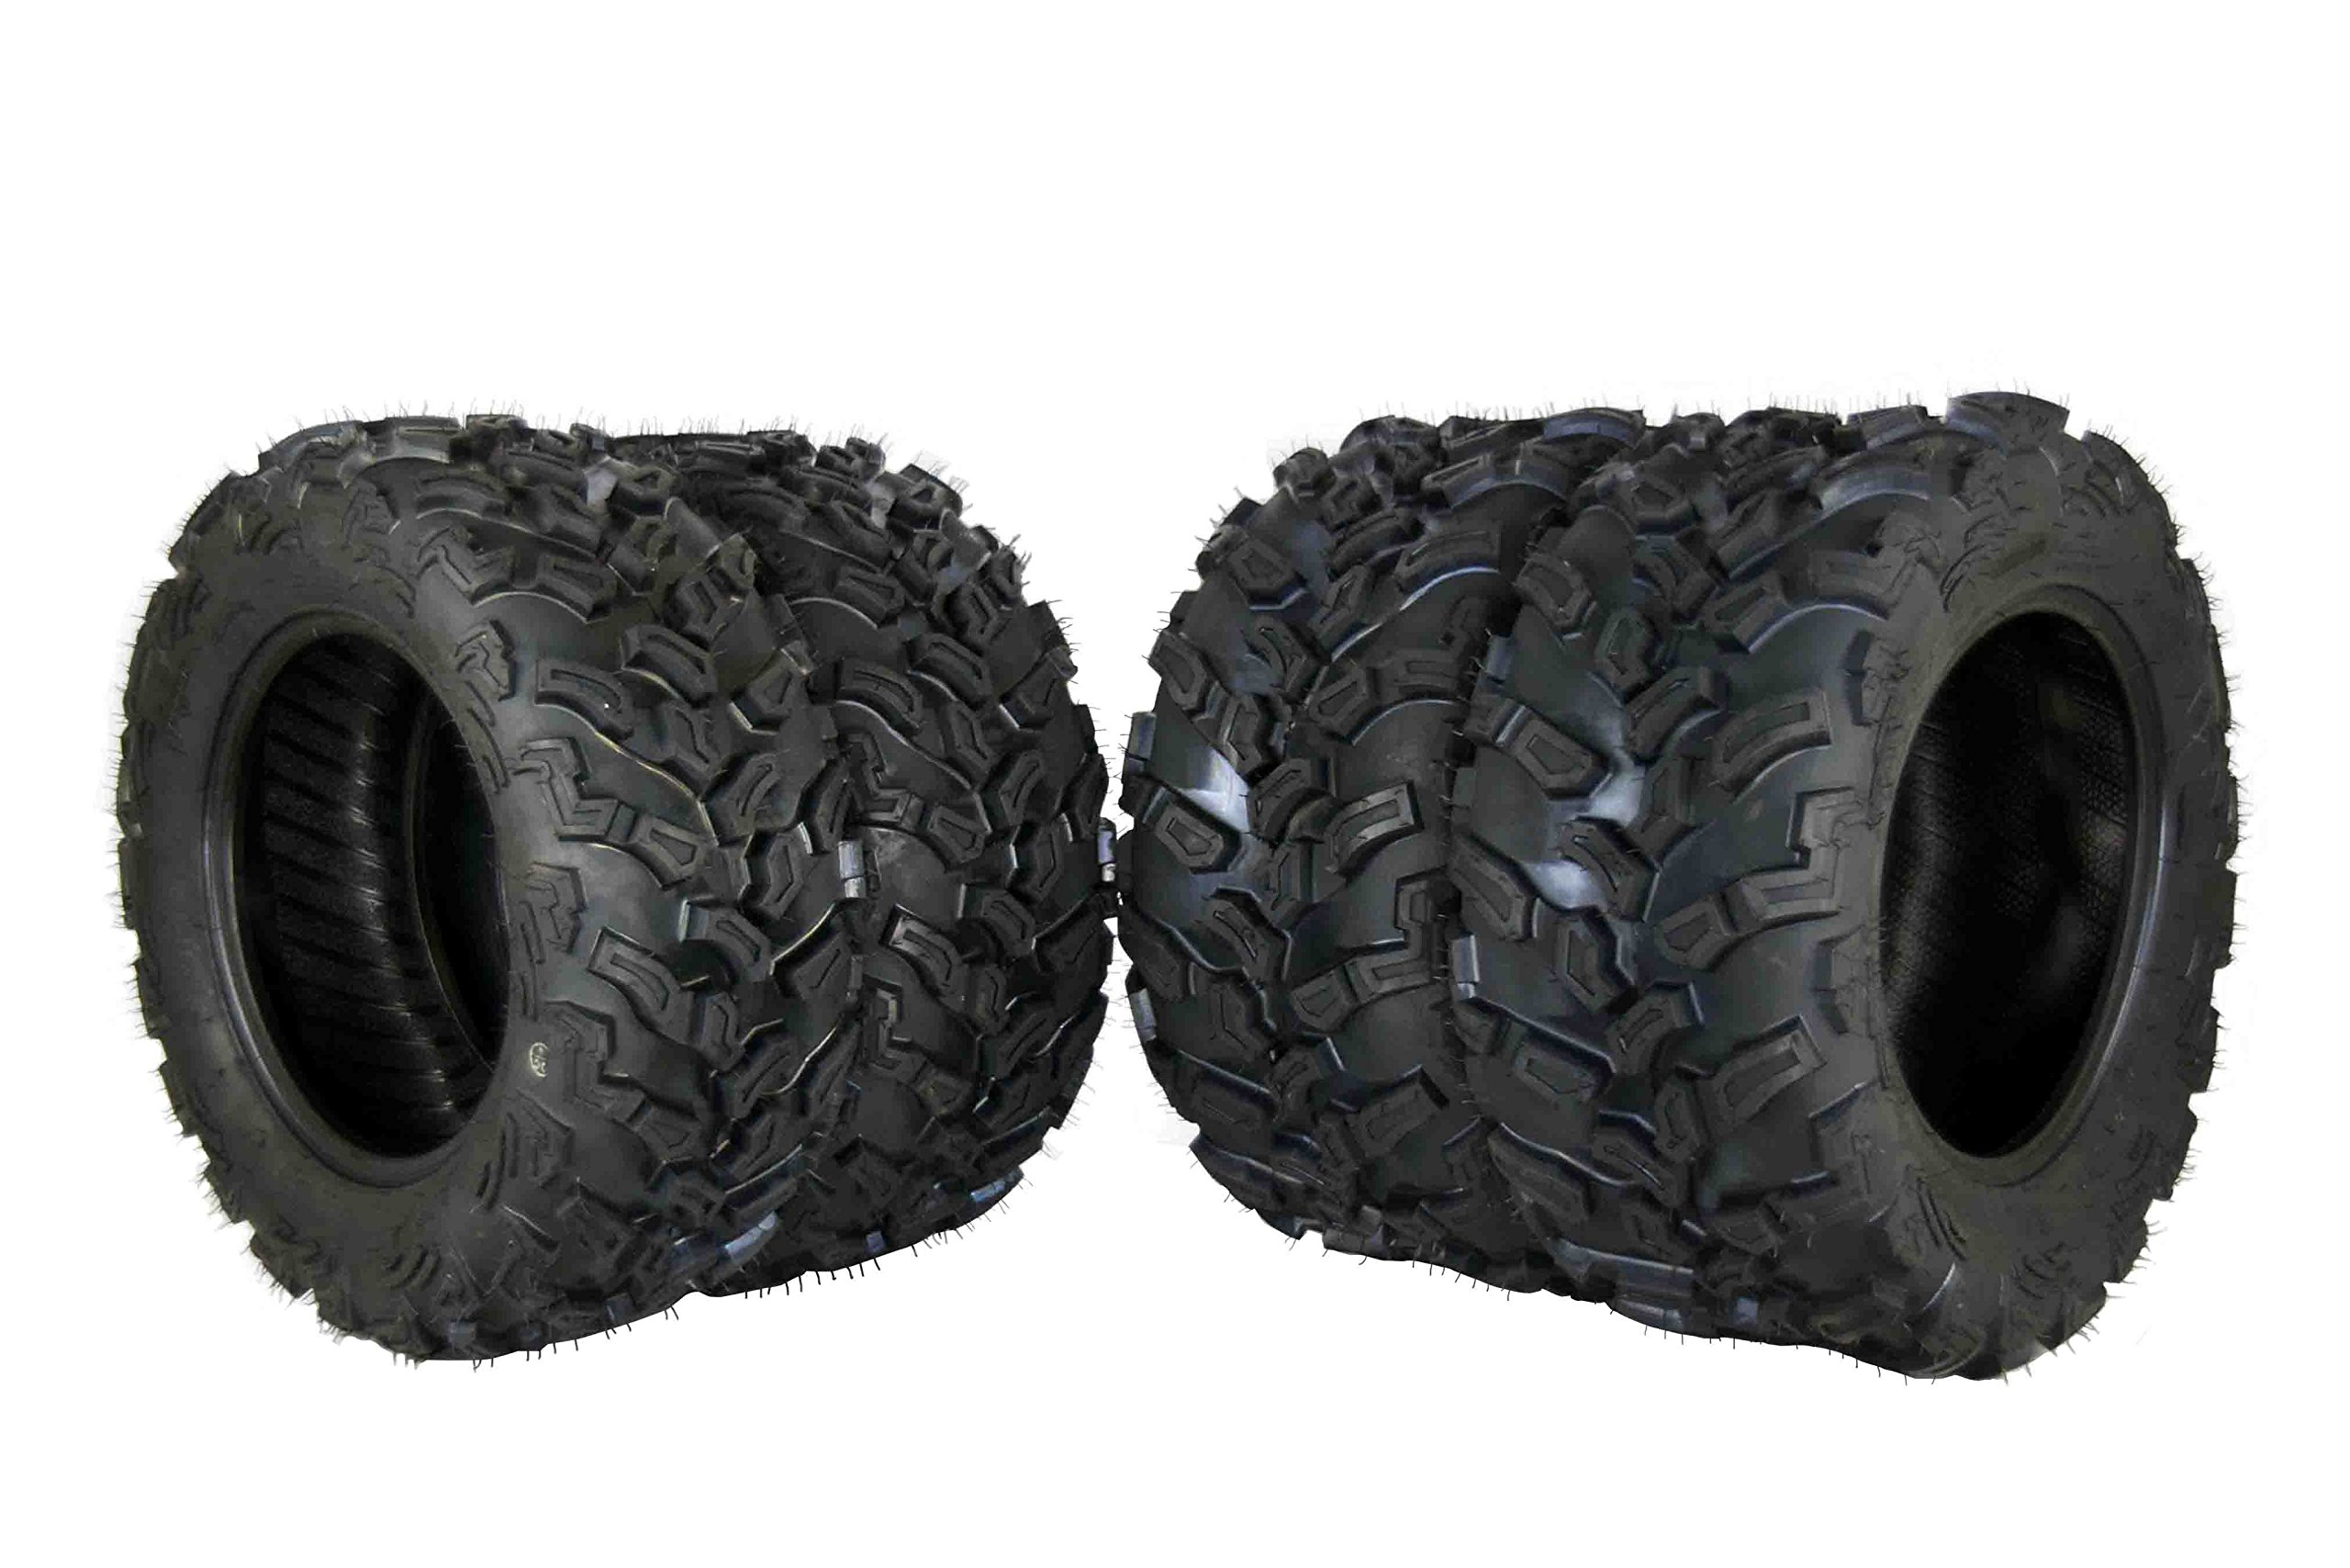 MASSFX 4 Set ATV Tires 27x9-14 Front 27X11-14 Rear Durable Dual Compound 6 Ply